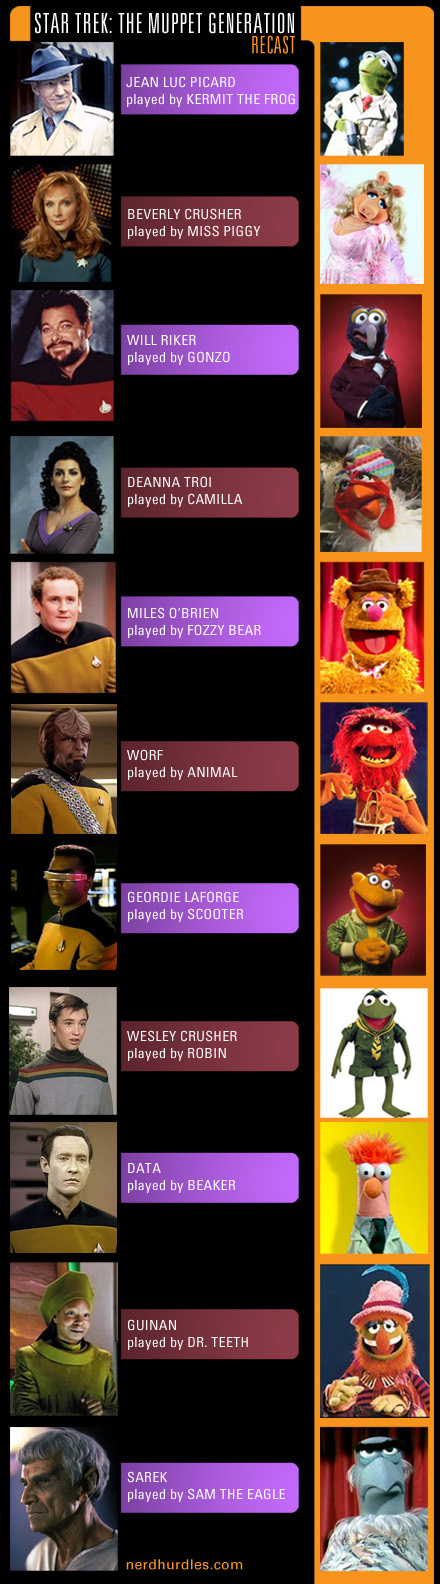 star trek the muppet generation